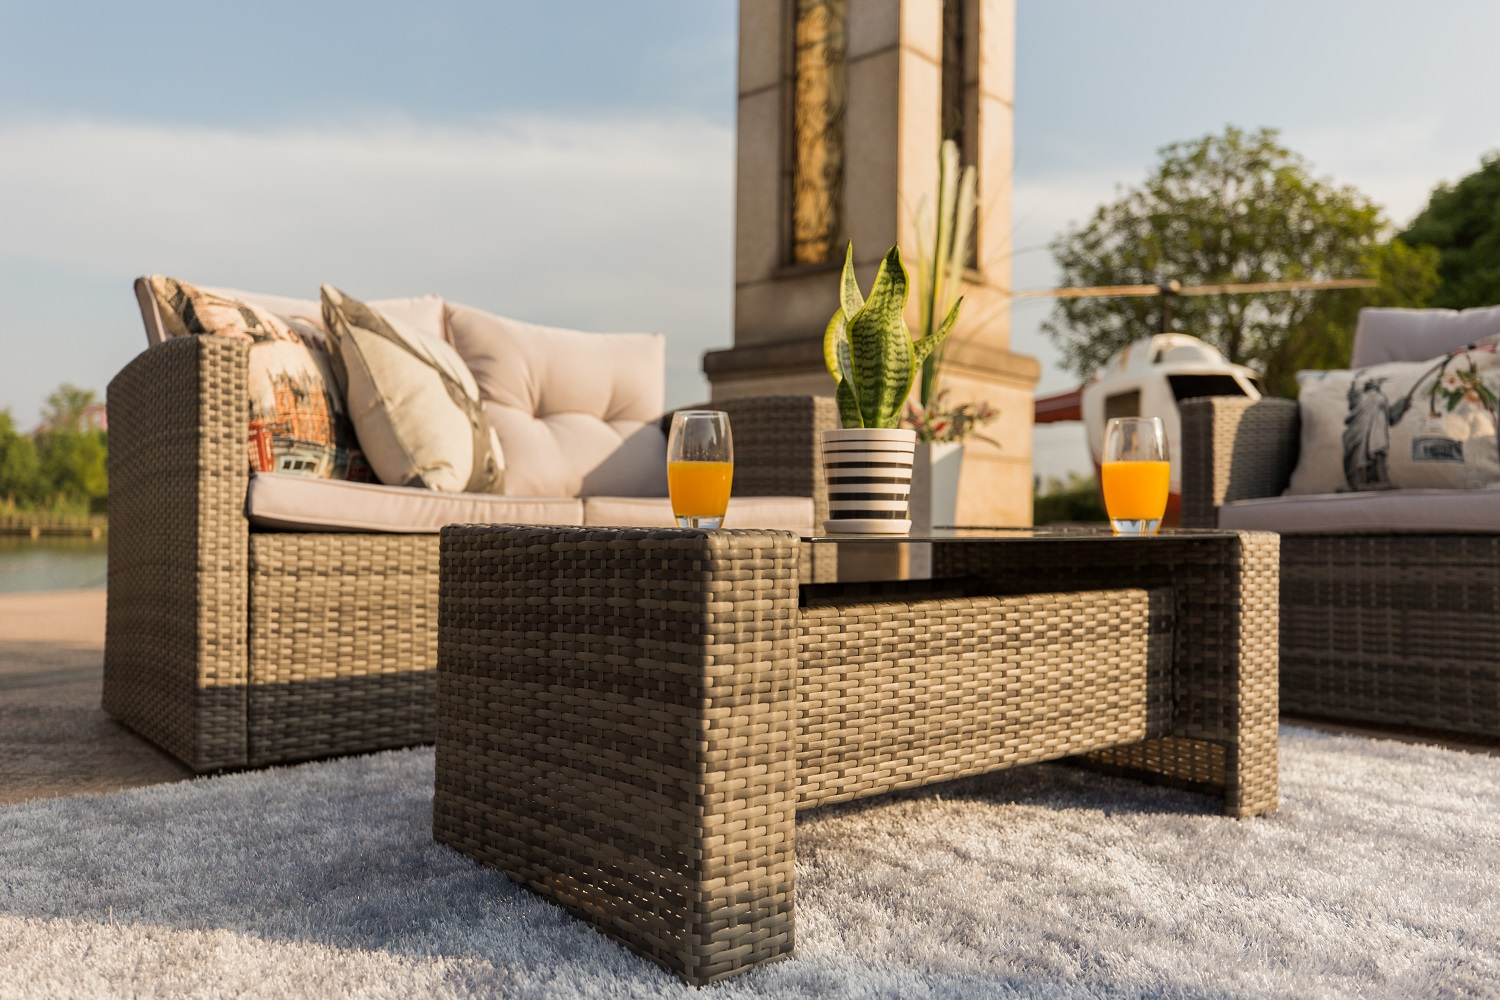 Baptist 6 Piece Rattan Sofa Set With Cushions Baptist Grey 6 Piece Outdoor Patio Furniture Conversation Set Garden Rattan Wicker Sofa Dining Set With Table And Luxury Cushions Lounge Set